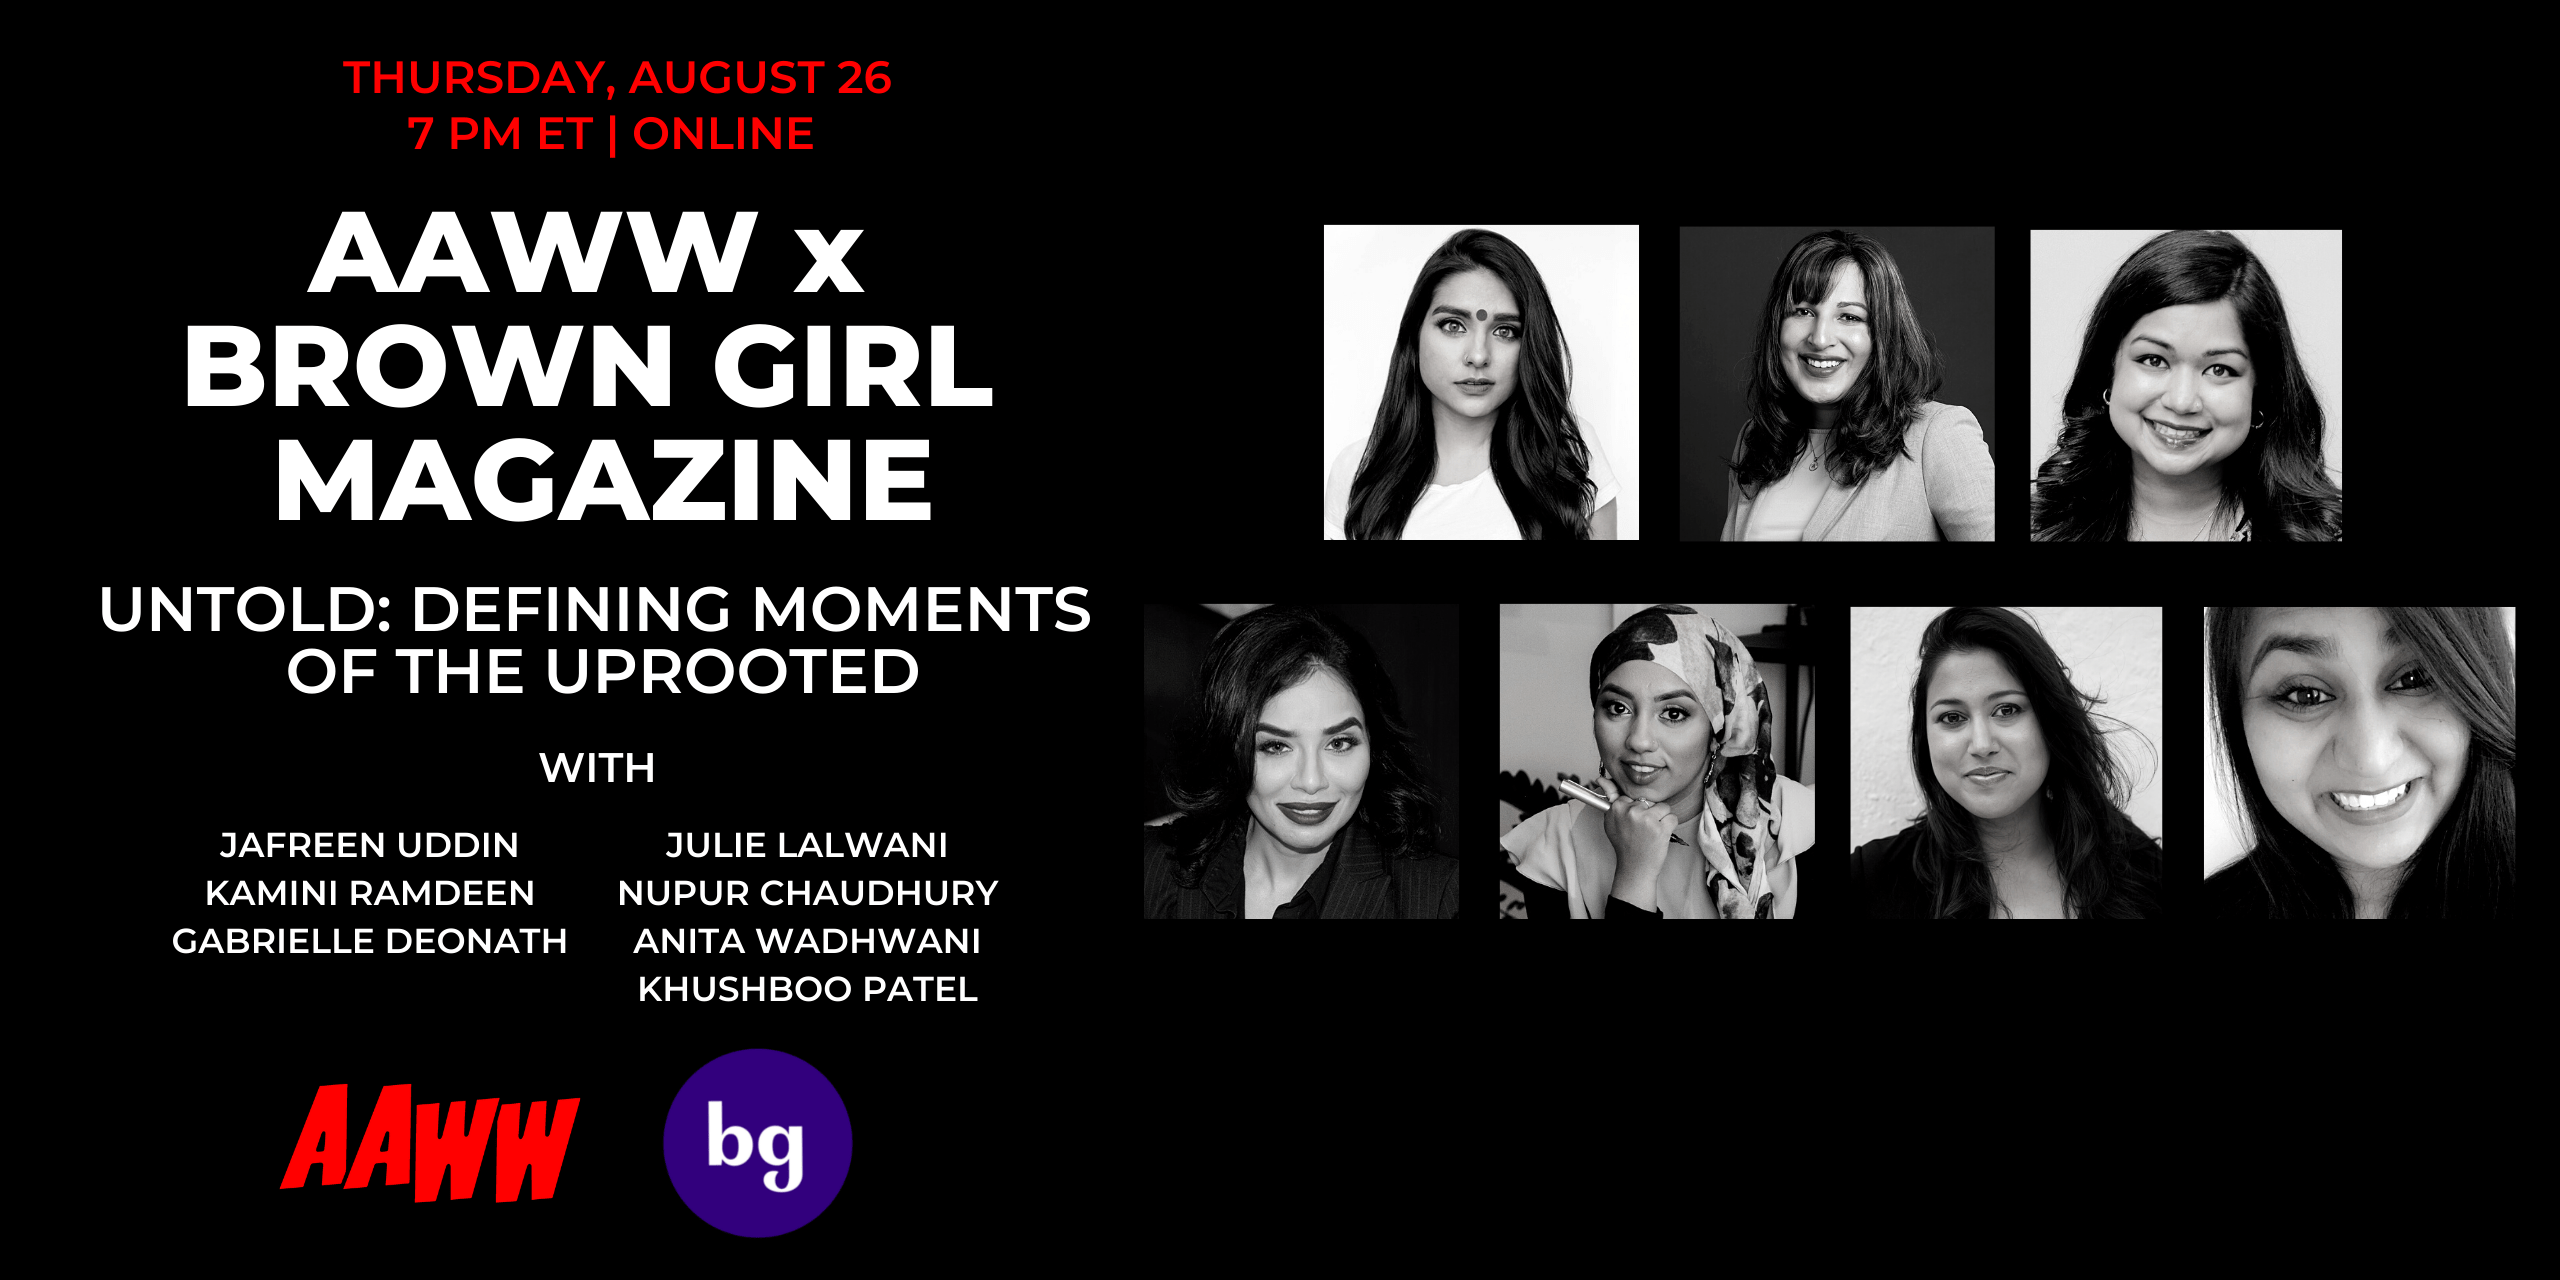 AAWW x Brown Girl Magazine: untold: defining moments of the uprooted